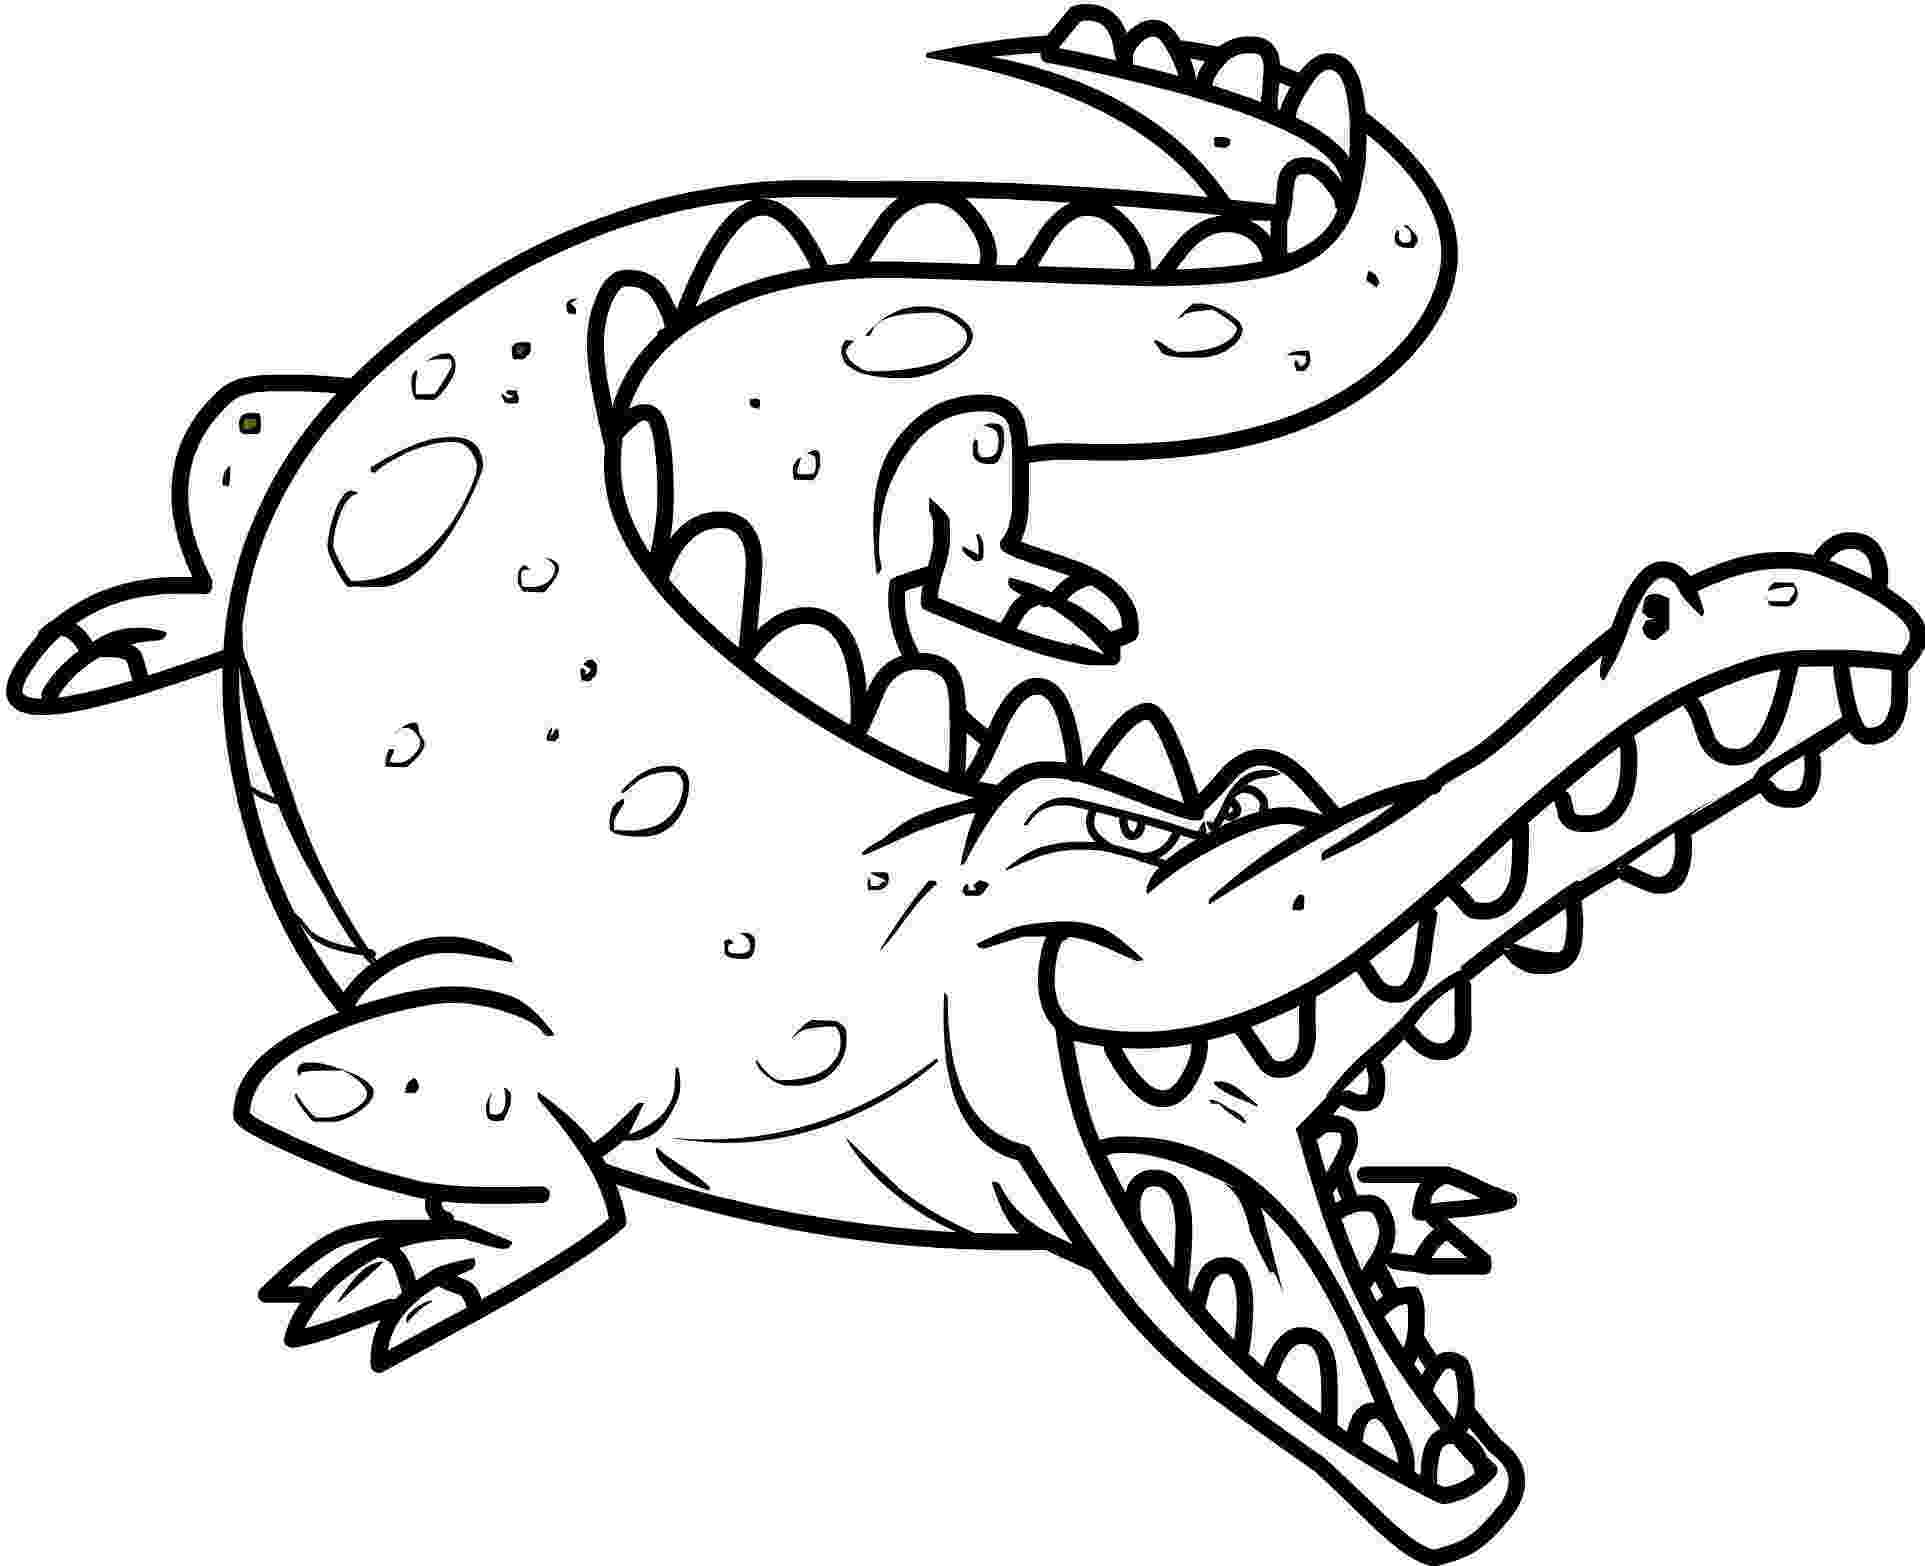 crocodile colouring free printable crocodile coloring pages for kids colouring crocodile 1 1